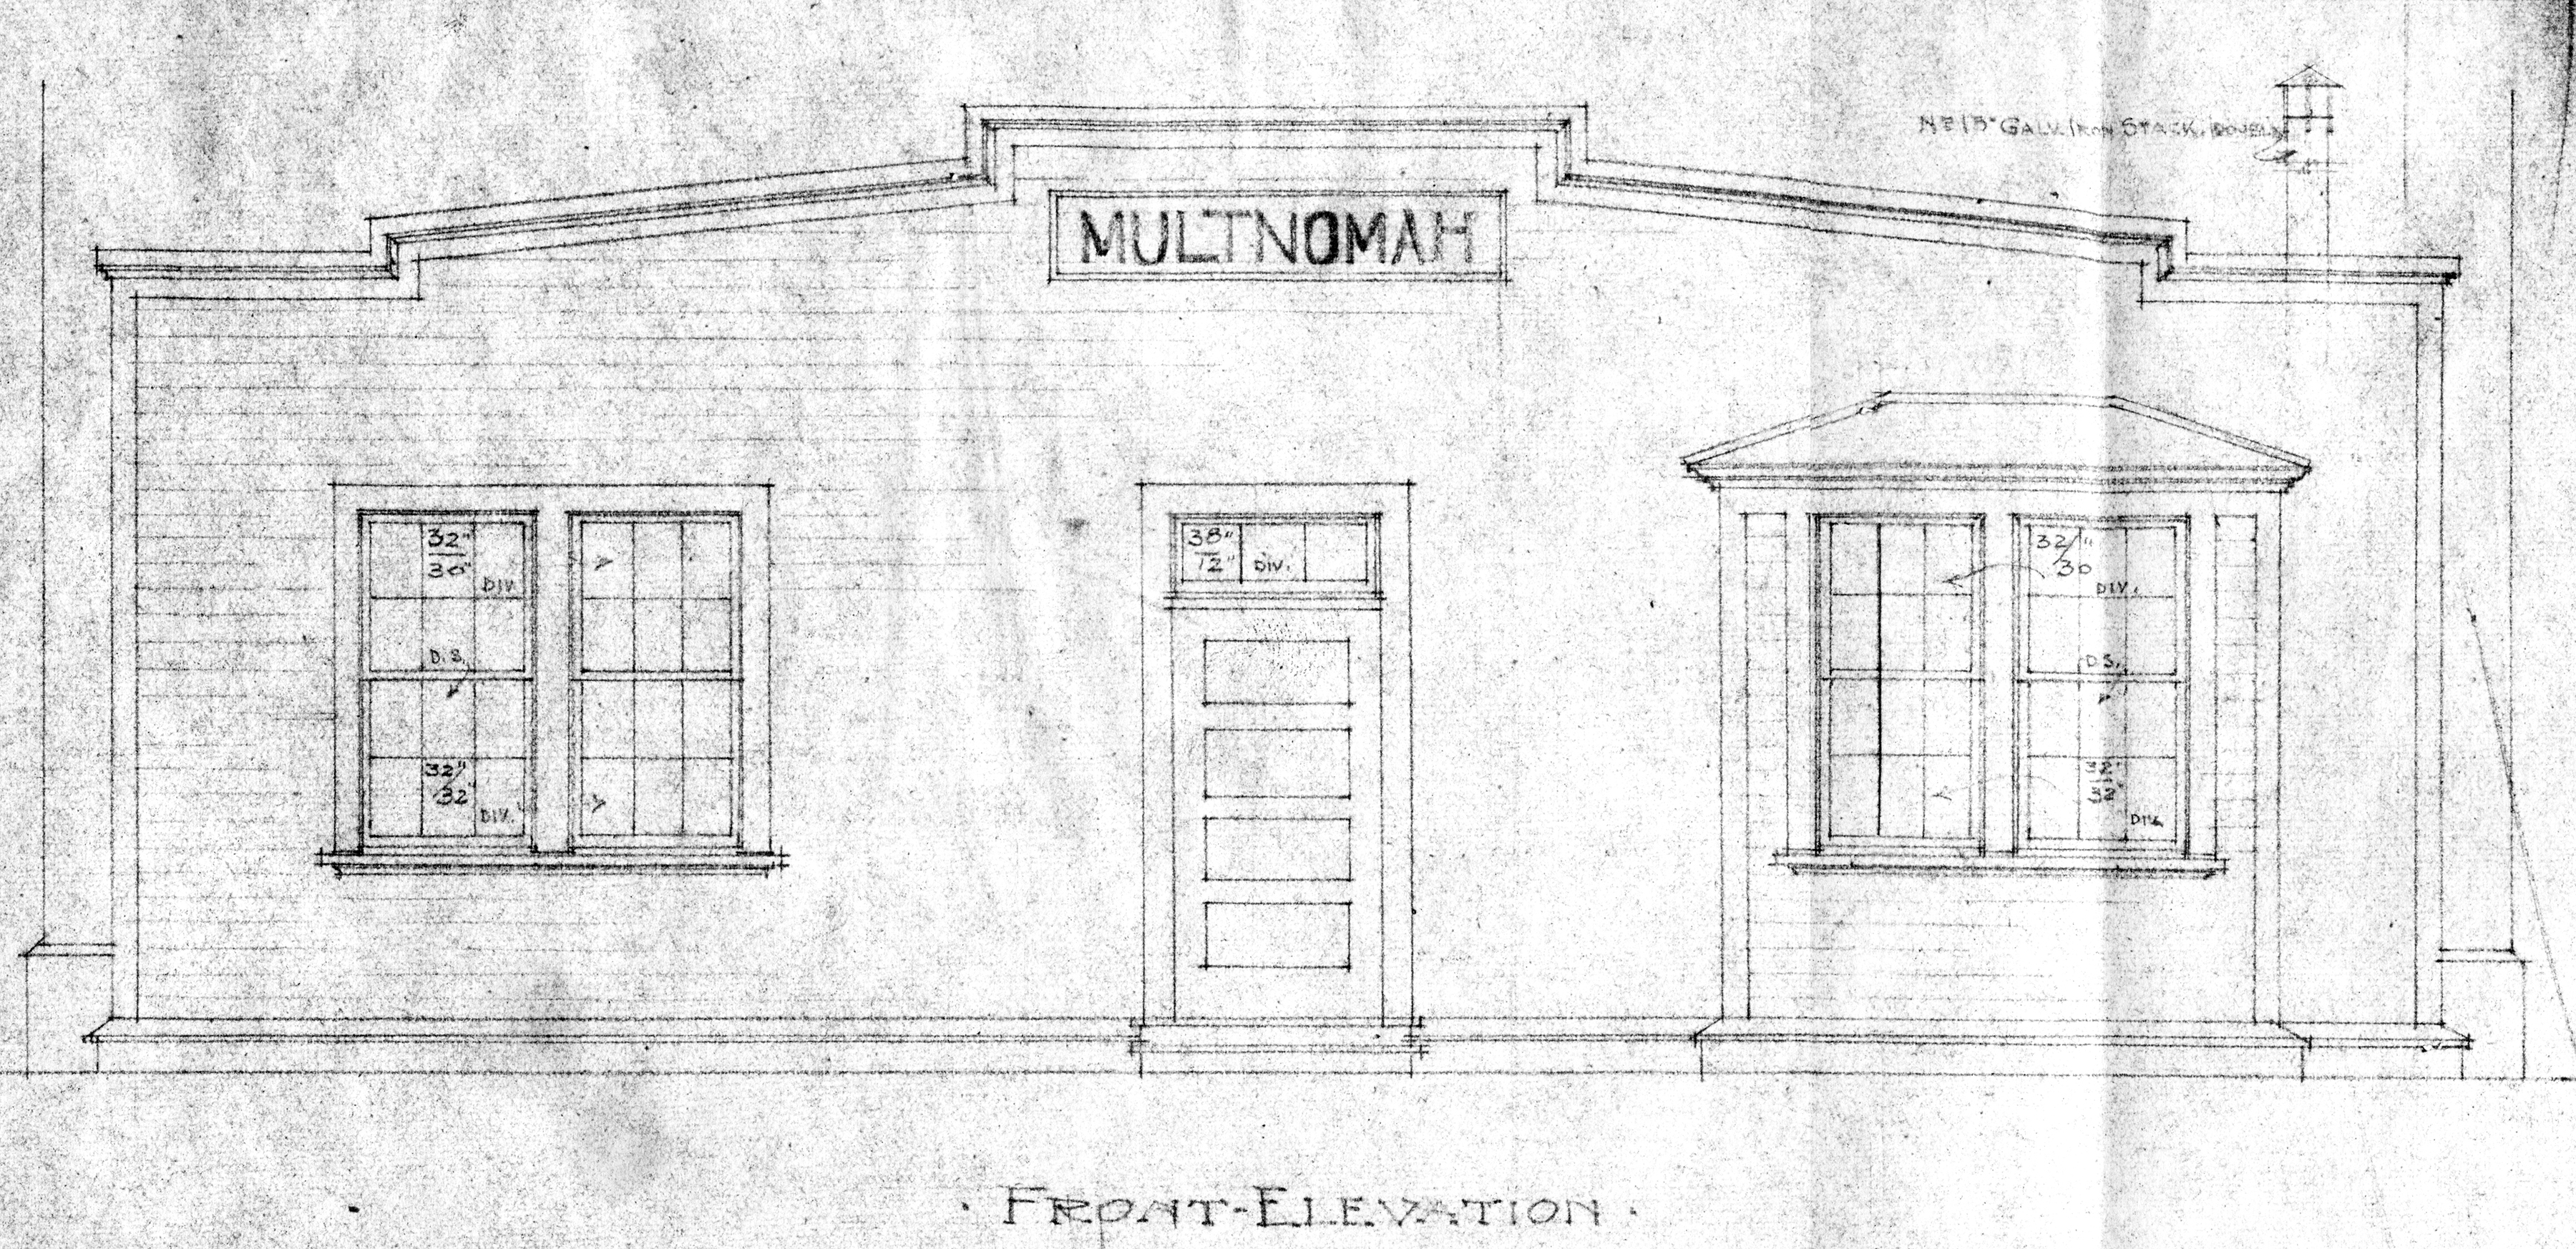 Front Elevation Blueprint : Multnomah station blueprints historical